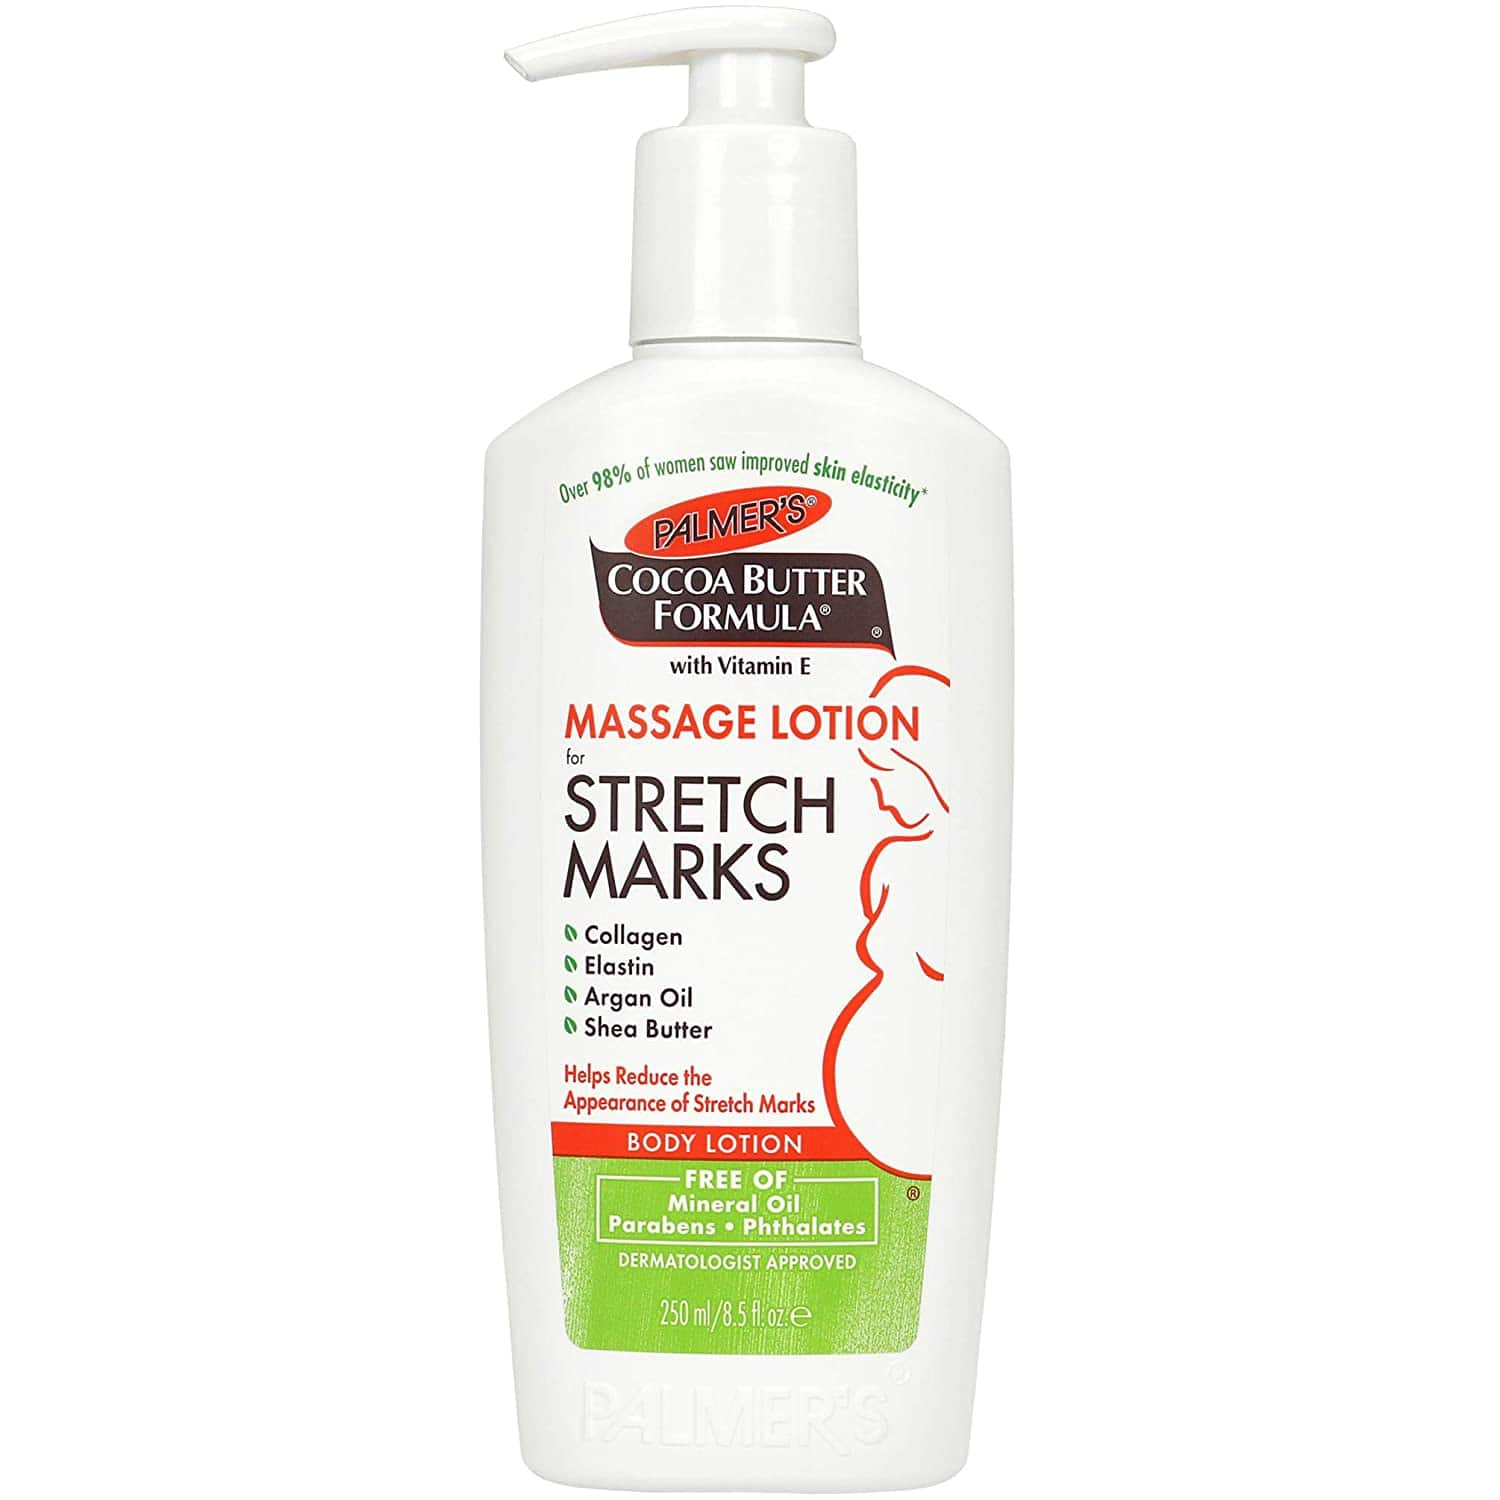 8.5-Oz Palmer's Cocoa Butter Formula Lotion for Stretch Marks $4.67 + Free Shipping w/ Prime or on $25+